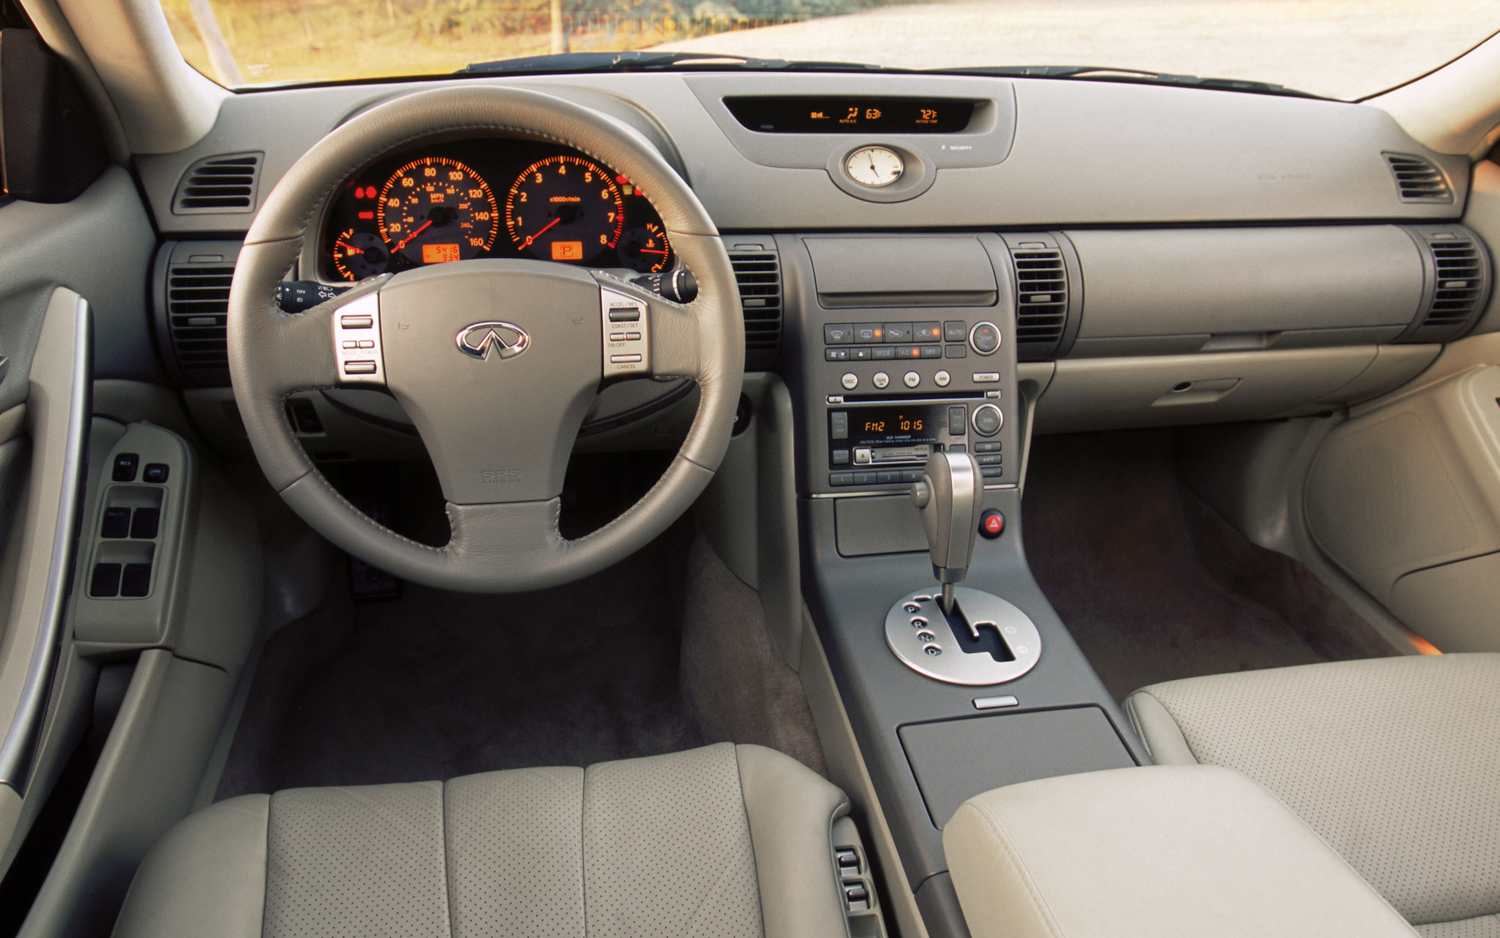 All Types infinity g35 2003 : Infiniti G35 technical specifications and fuel economy